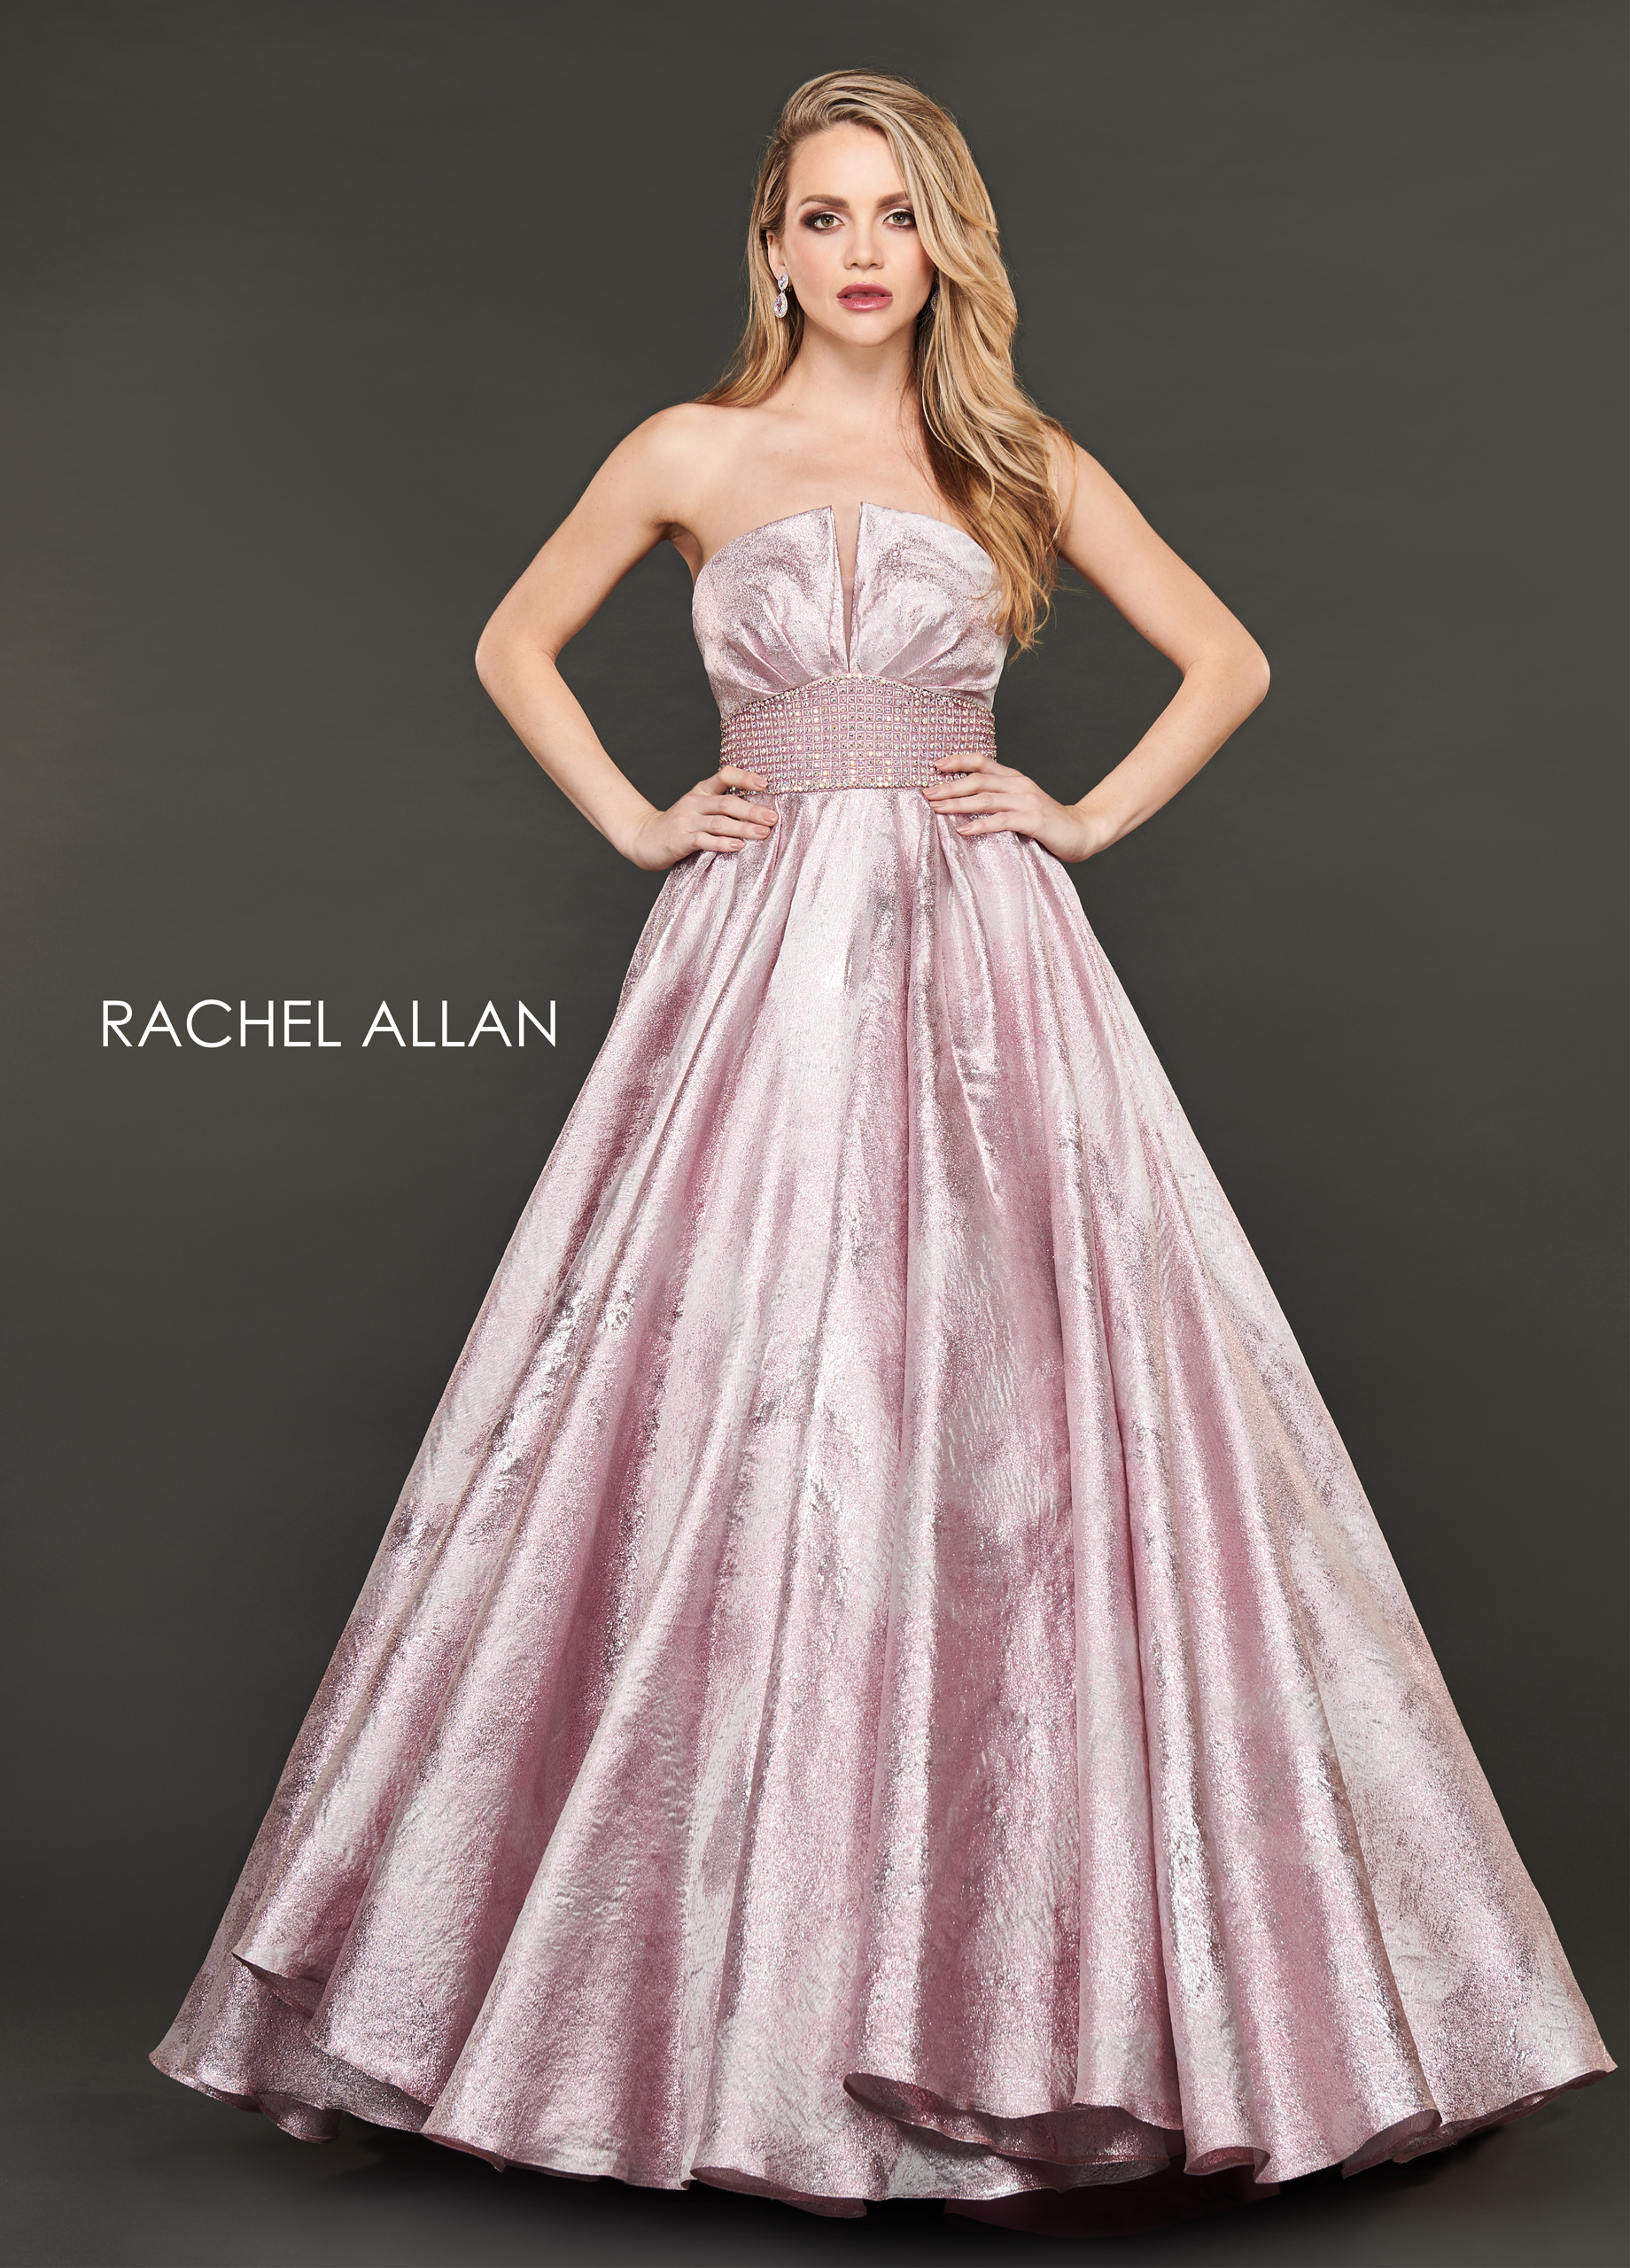 Strapless Ball Gowns Couture Dresses in Blush Color